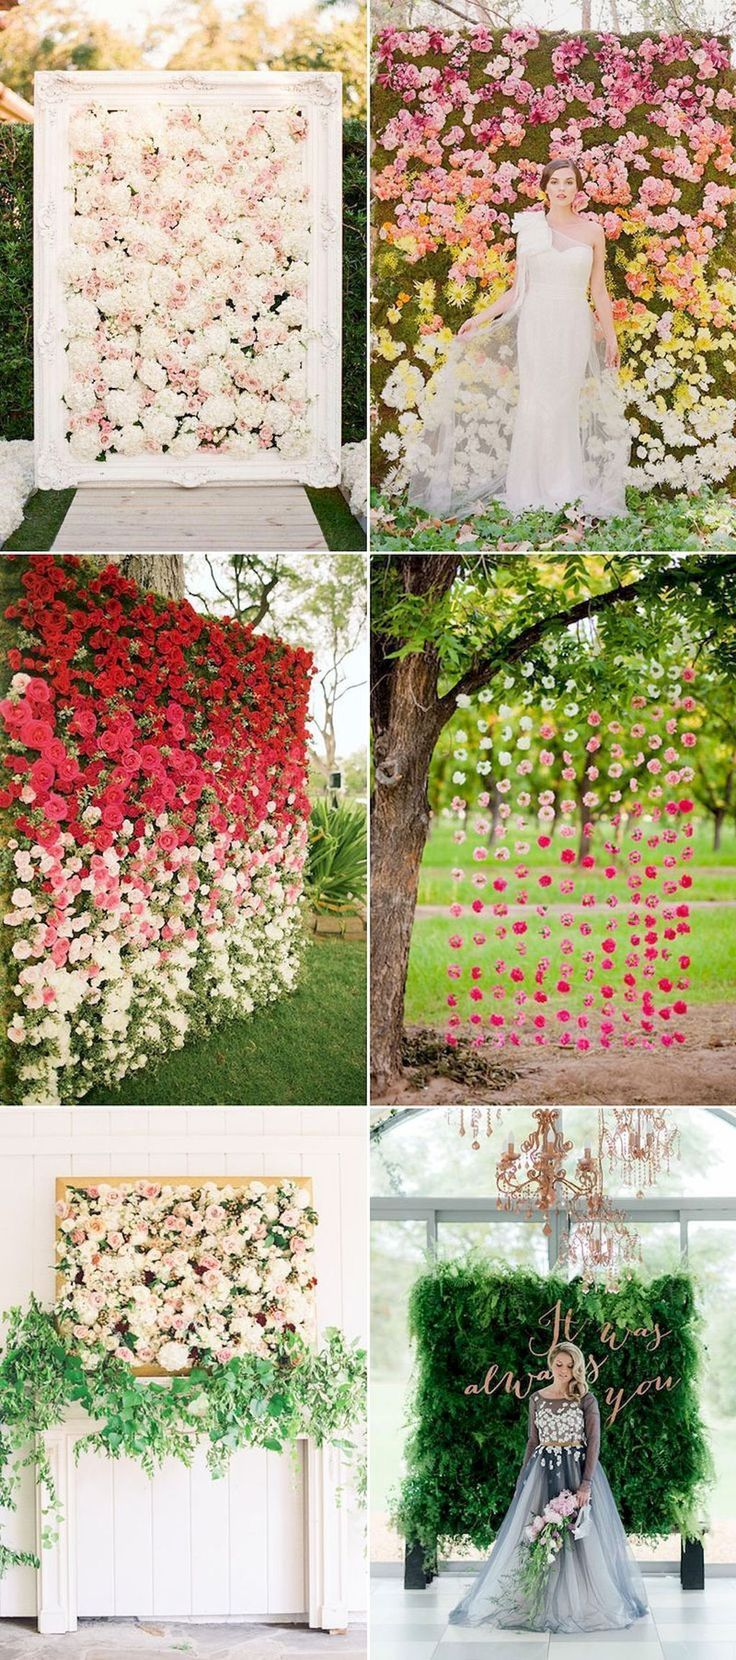 Gorgeous 36 Amazing Fall Outdoor Wedding Ideas on a Budget https://bitecloth.com/2017/06/23/36-amazing-fall-outdoor-wedding-ideas-budget/ #fallweddingideas #WeddingIdeasOnABudget